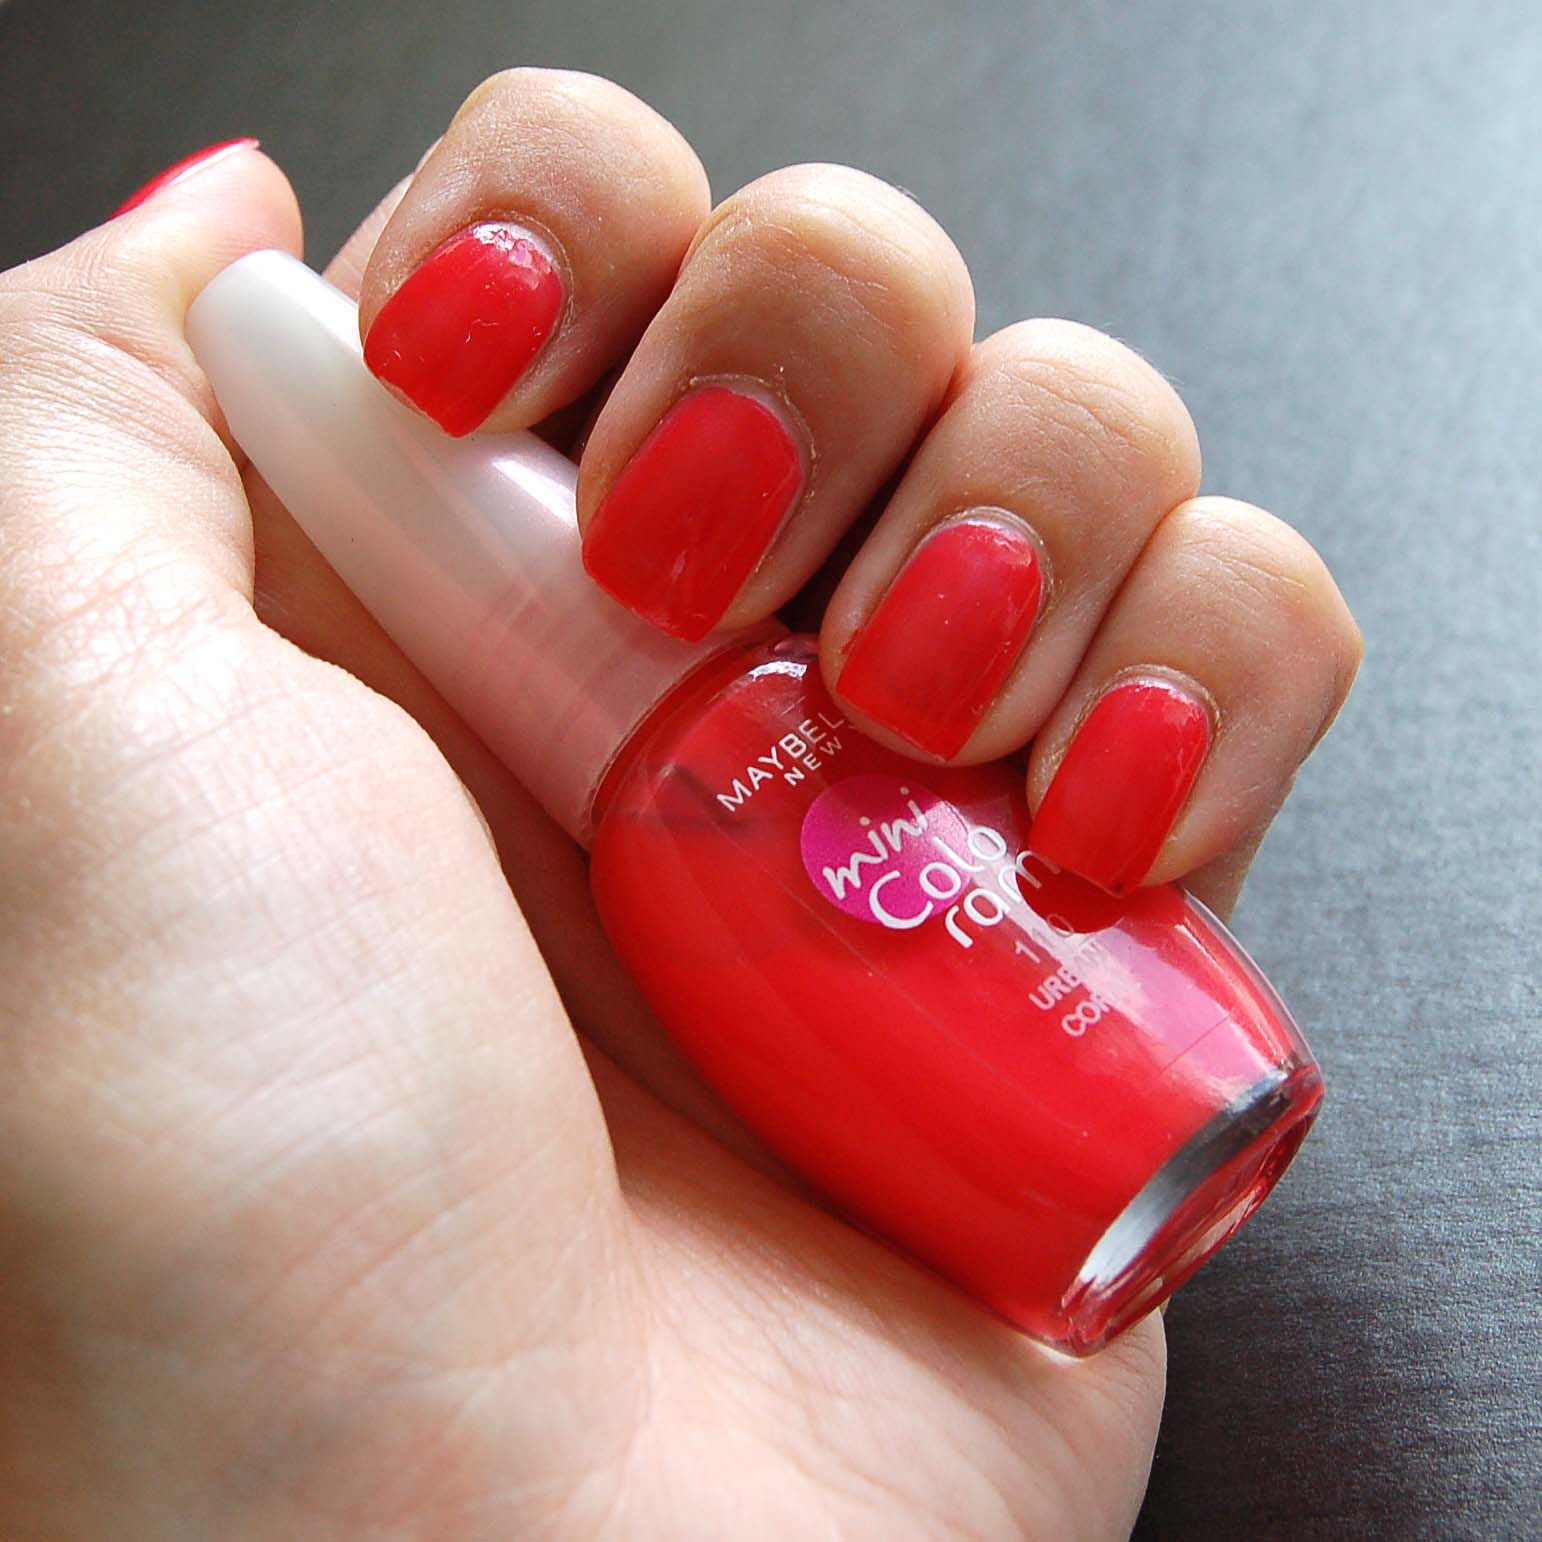 Dragonfly S Jewelry Summer Coral Nails